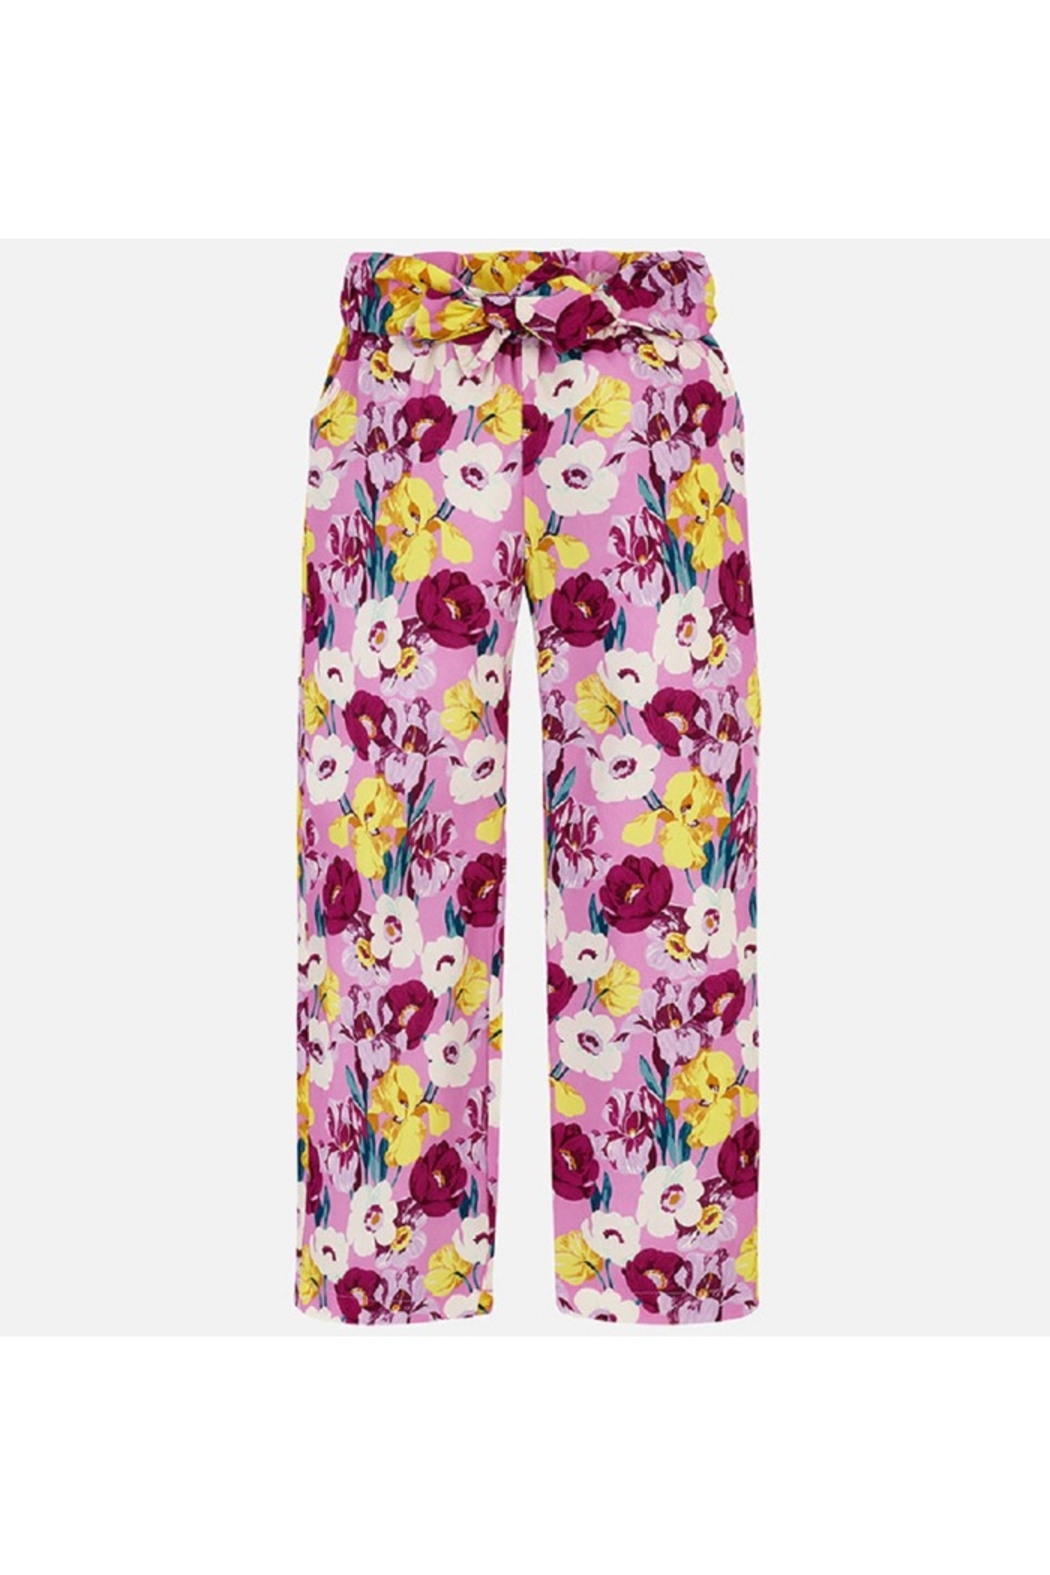 Mayoral FLORAL FLOWY PANT - Main Image